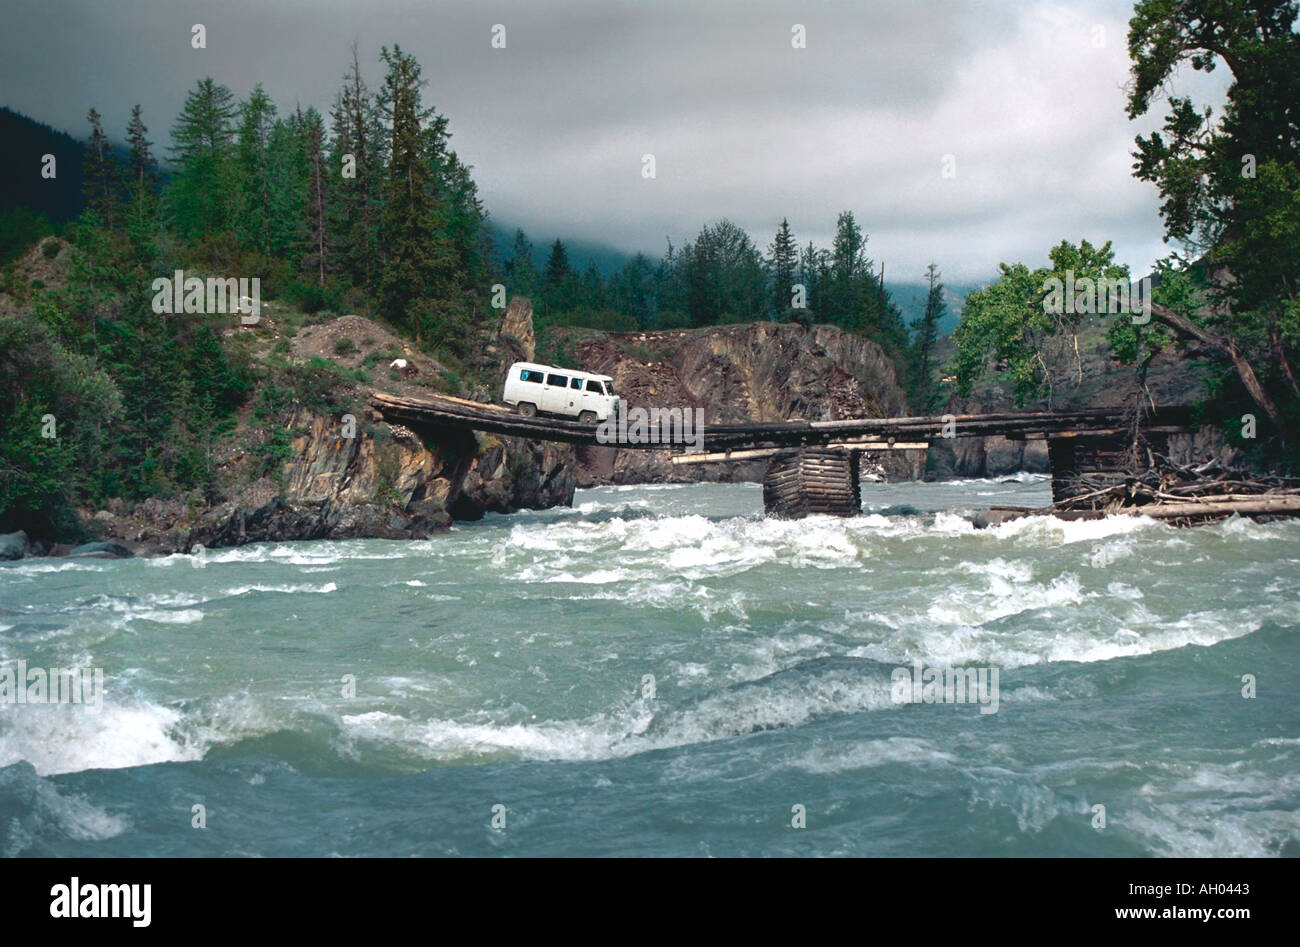 In Altai, Sibmost will build a bridge and reconstruct the Chui road 9